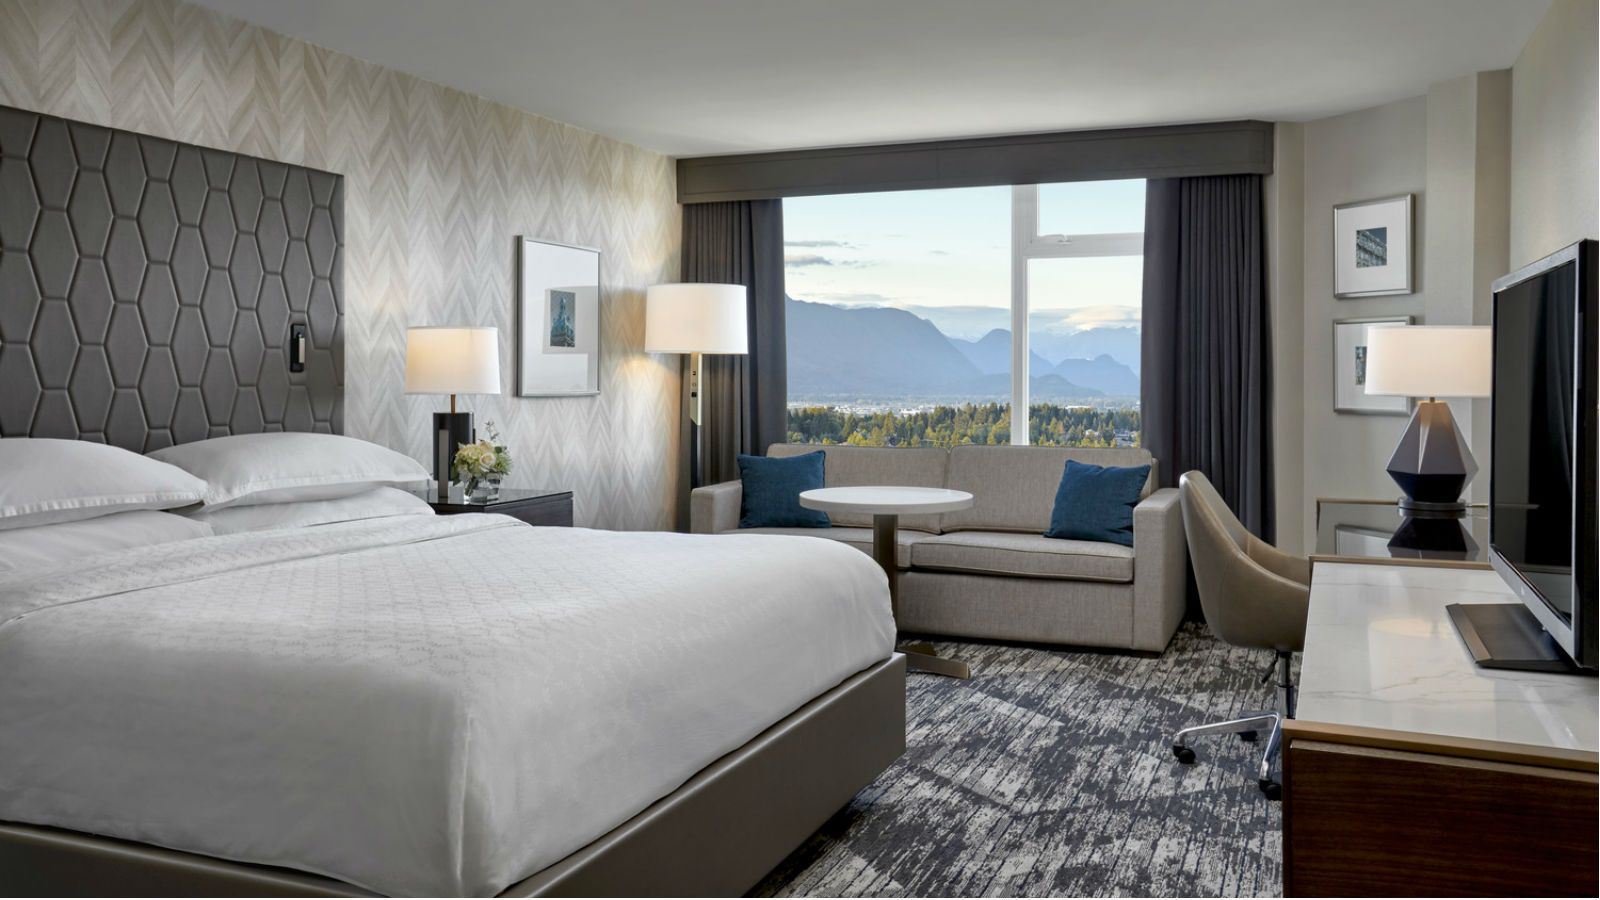 A traditional room at the Sheraton Vancouver Guildford, complete with mountain views.